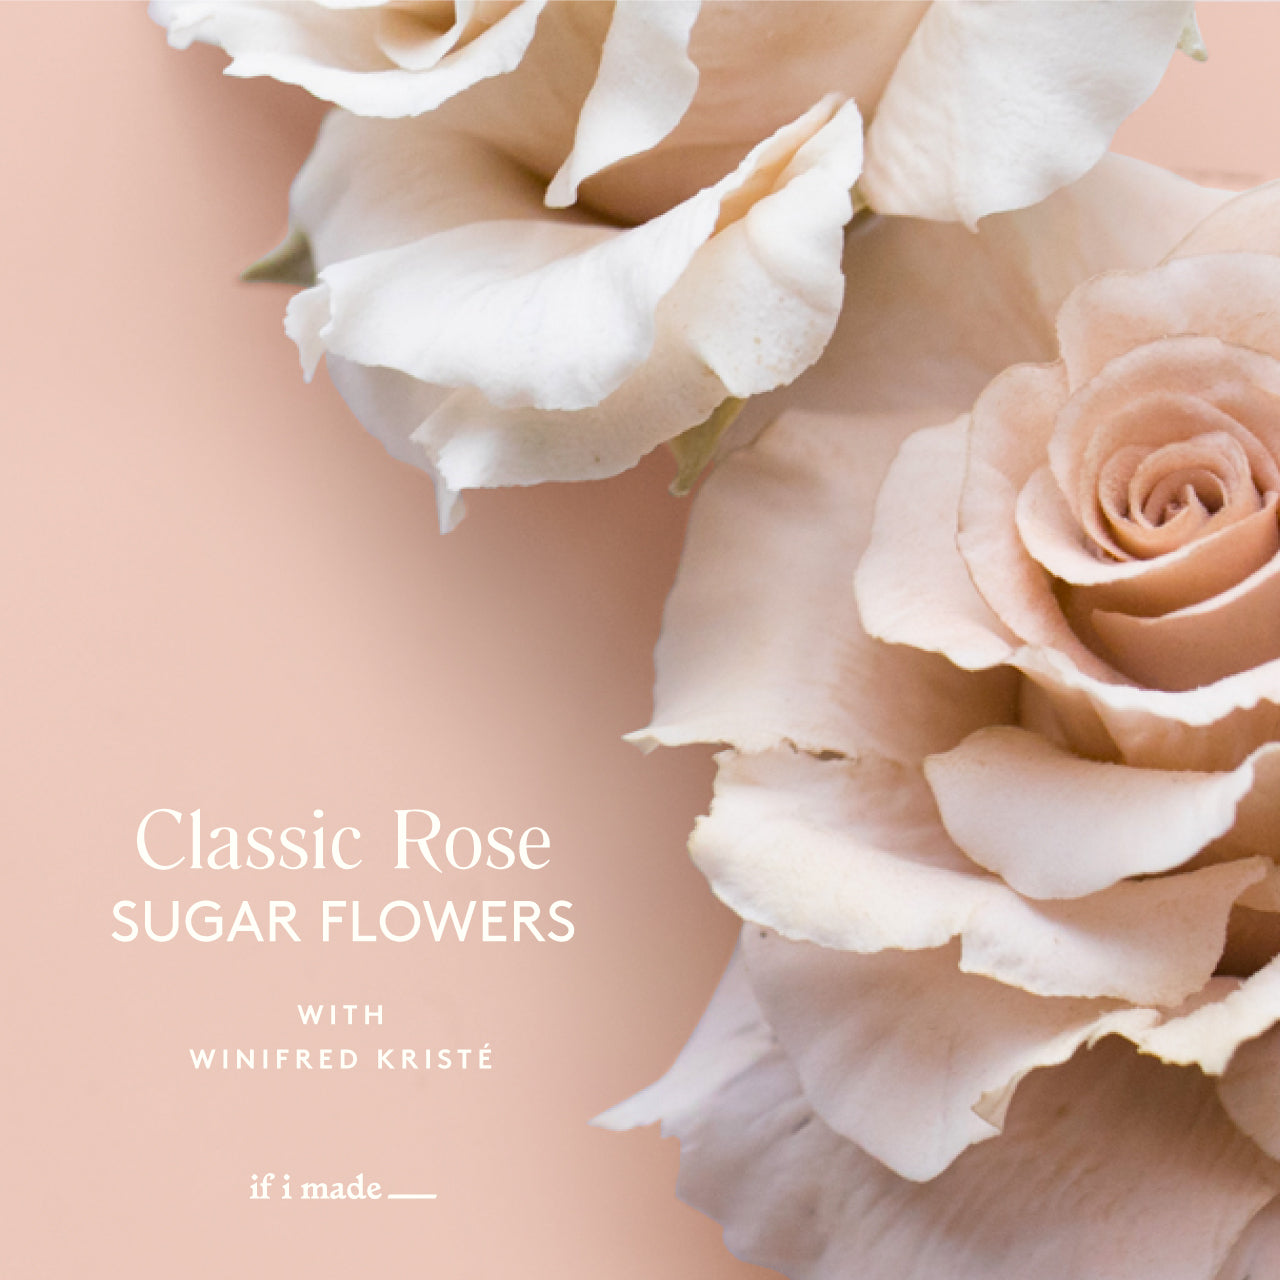 Sale Payment Plan: Classic Rose with Winifred Kristé Cake 4 Payments of $99